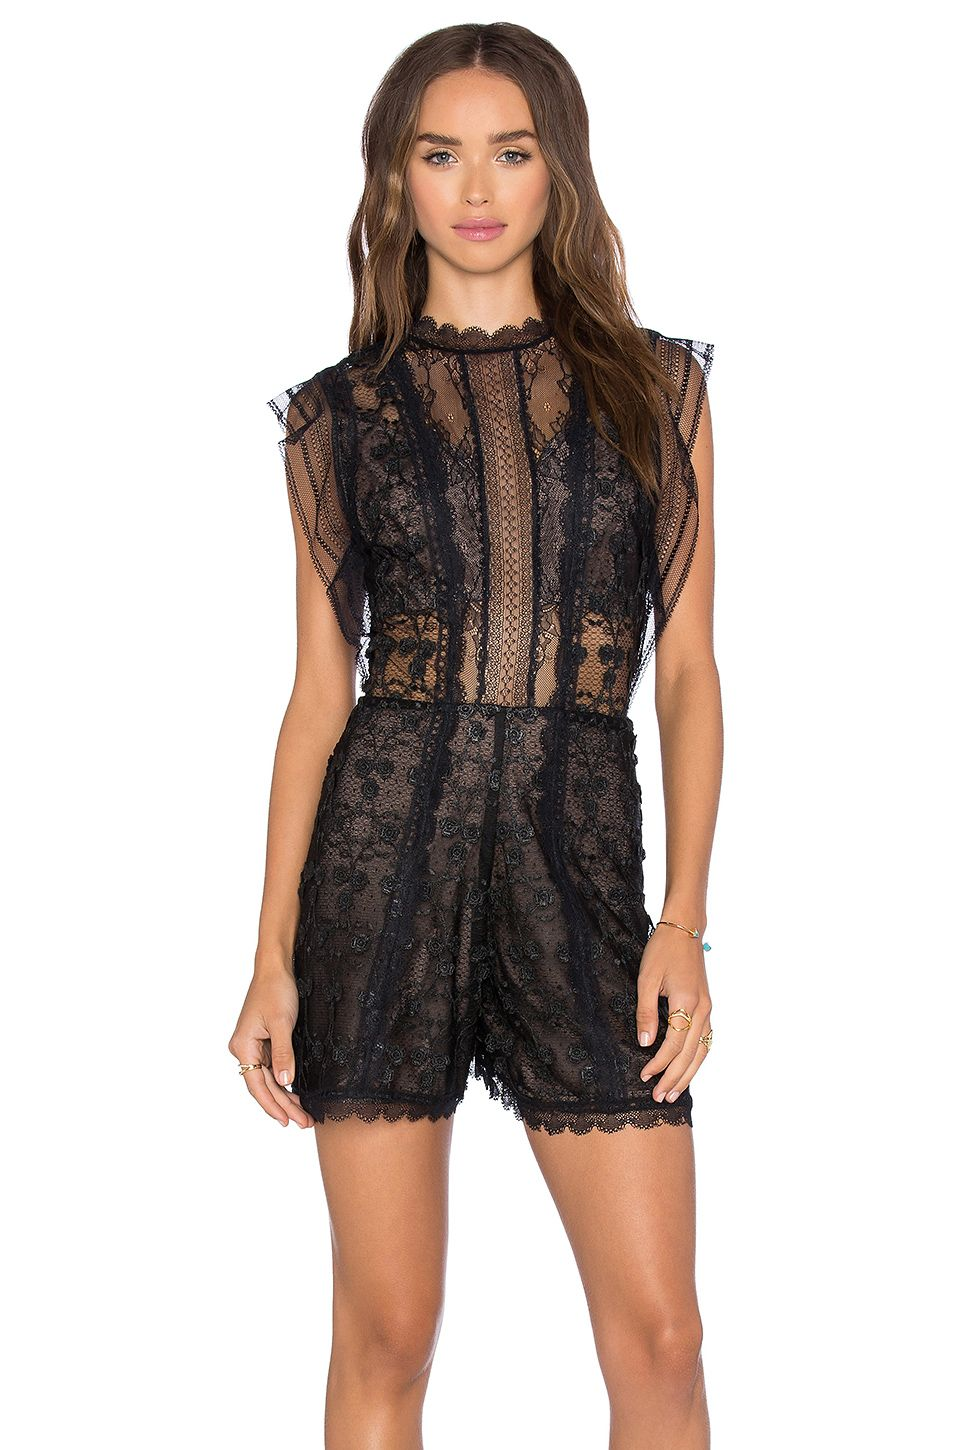 d00d869dd91 Alexis Lowe Romper in Black Flower Embroidery